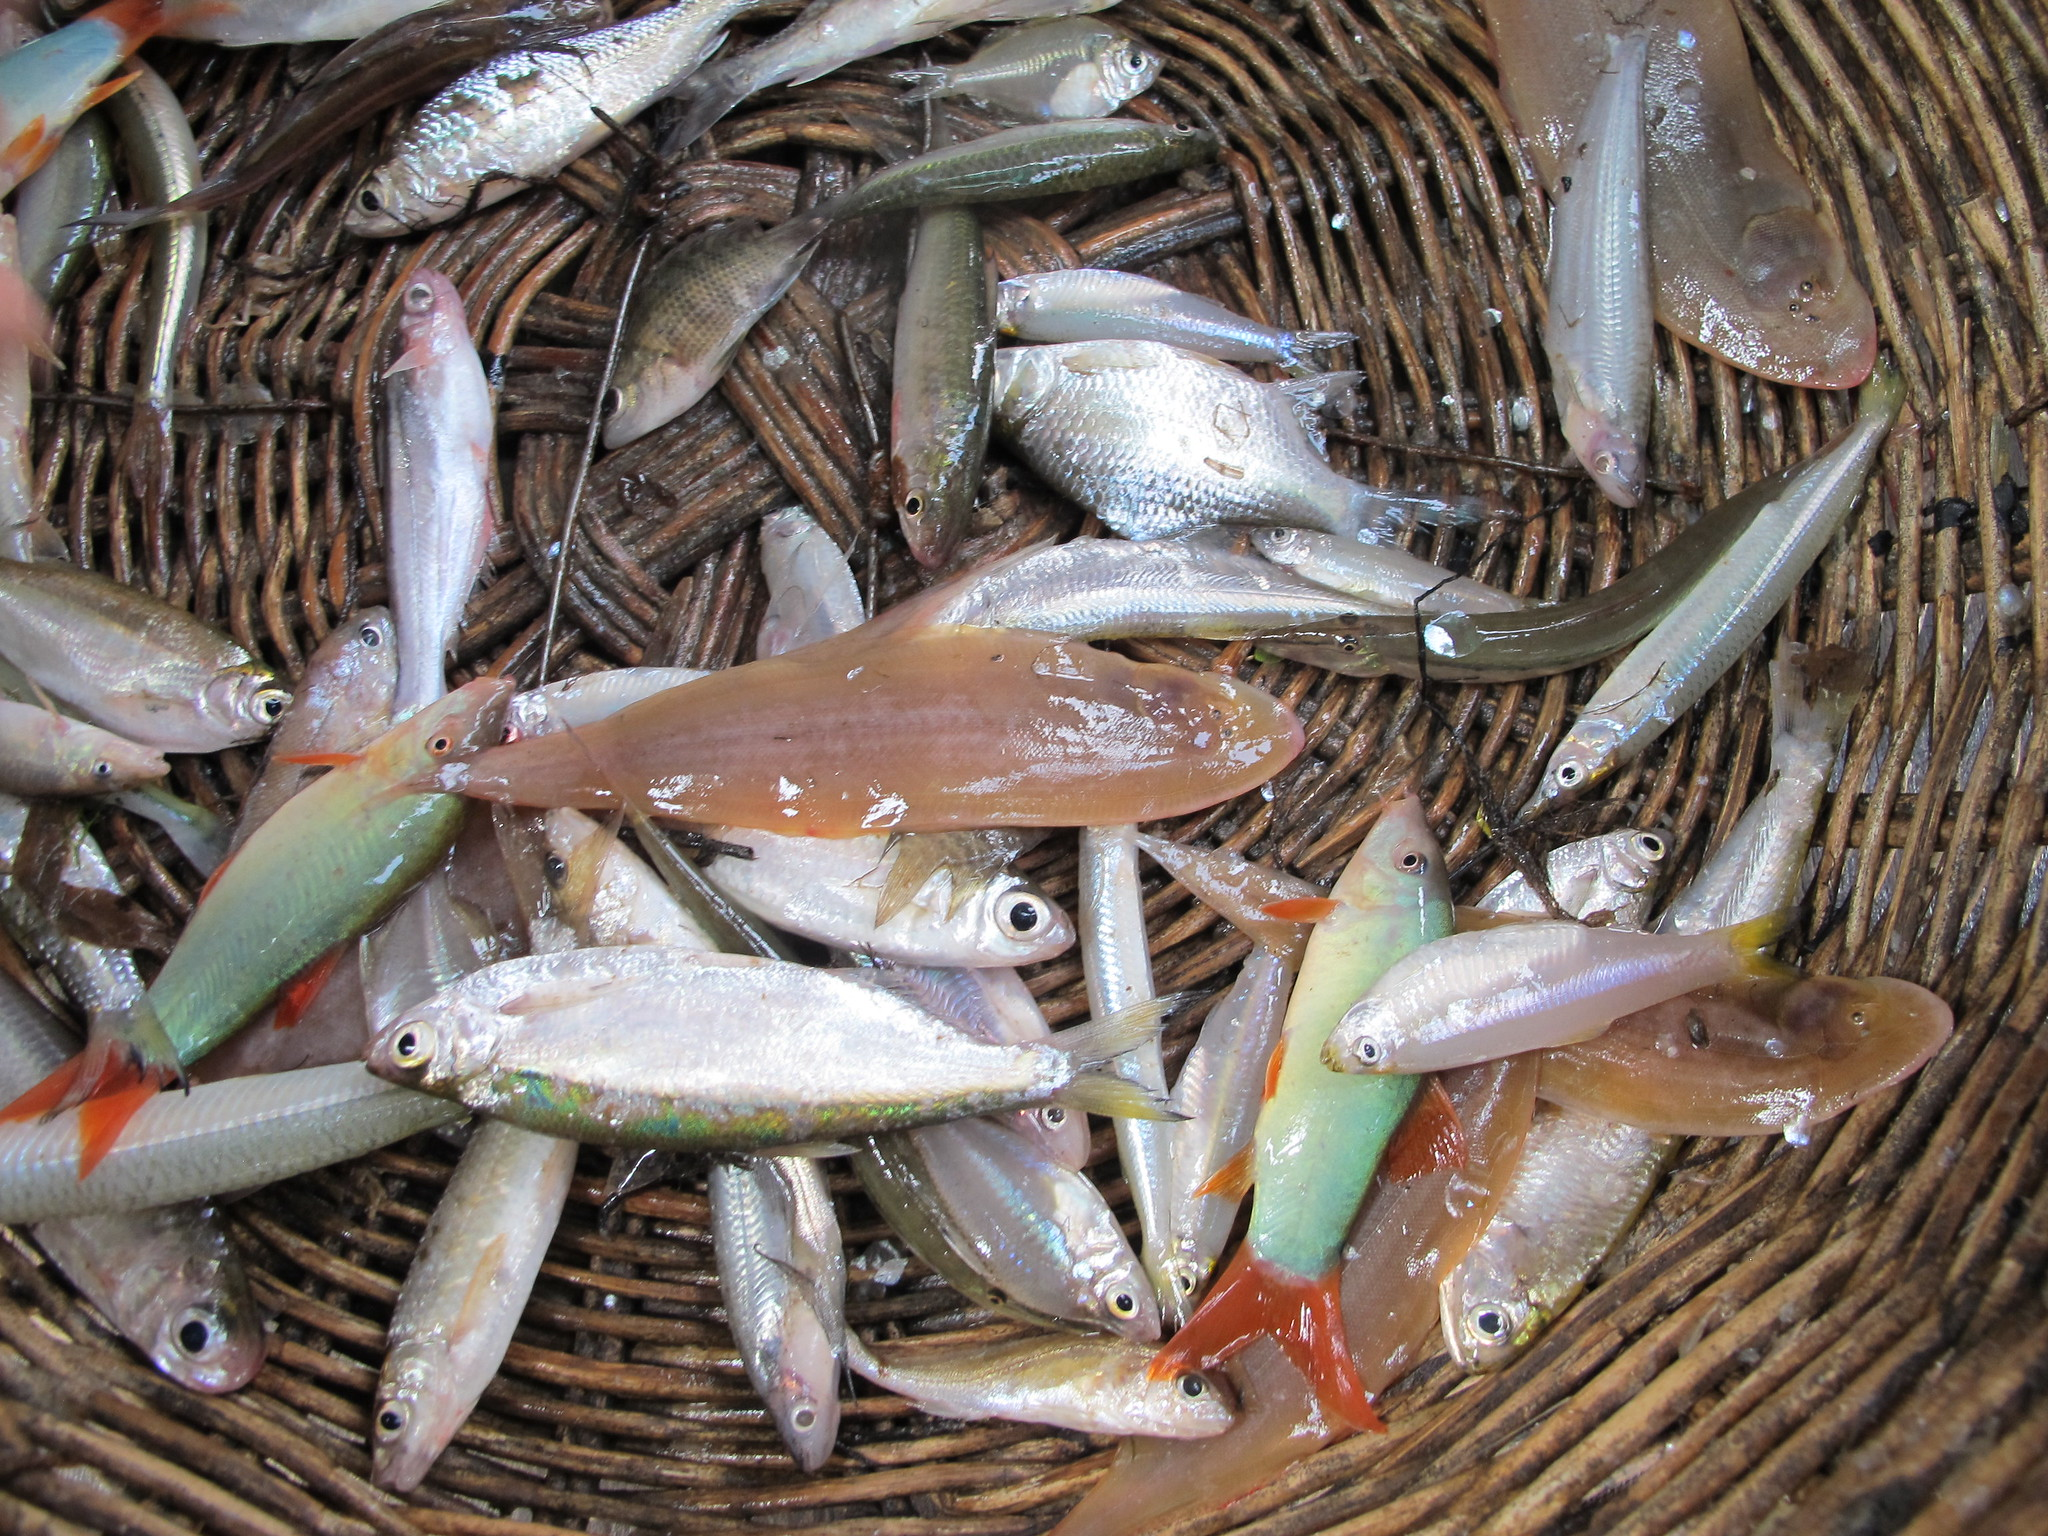 Fish from Cambodian dai fishery